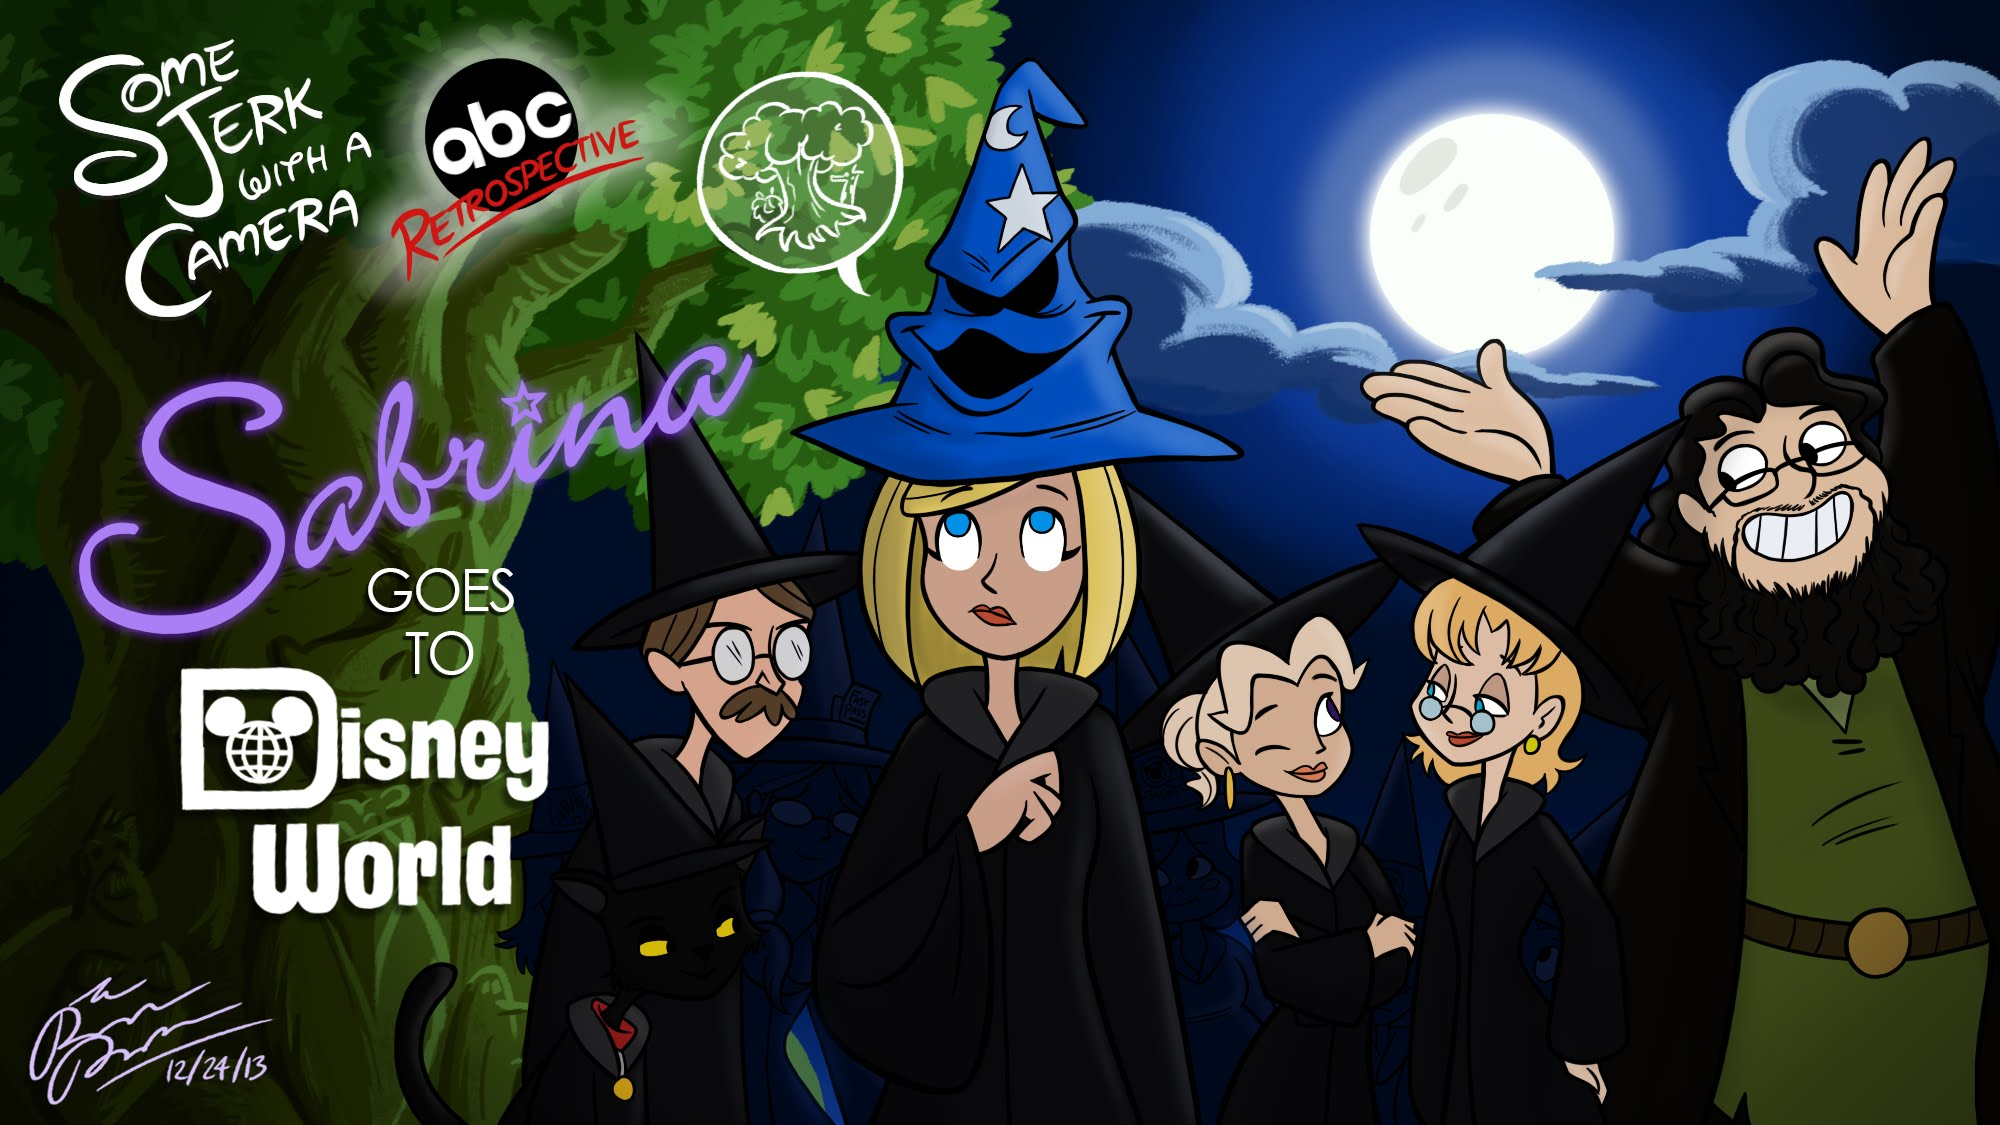 Sabrina the Teenage Witch Goes to Disney World!